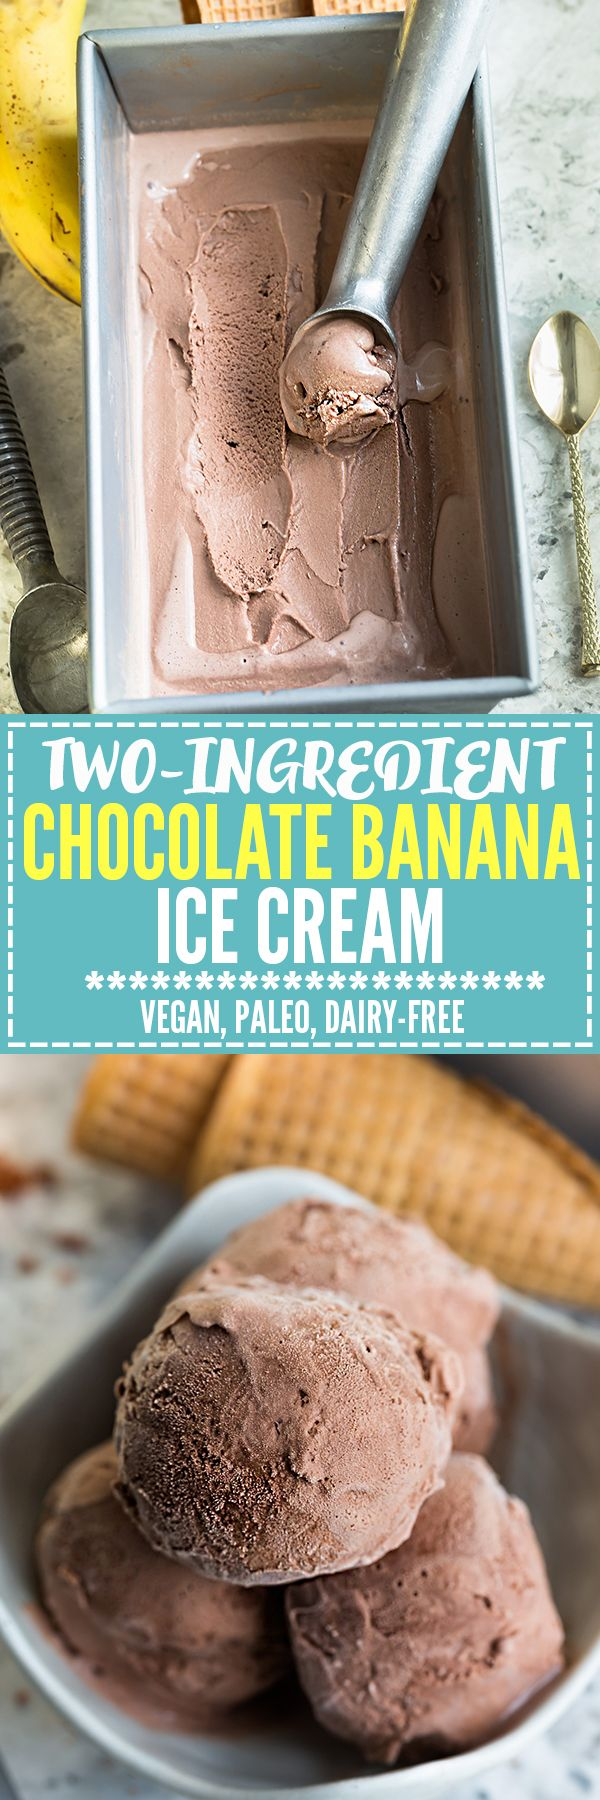 Two-Chocolate Banana Ice Cream makes the perfect healthy, paleo-friendly frozen treat! Best of all, no ice cream maker required!